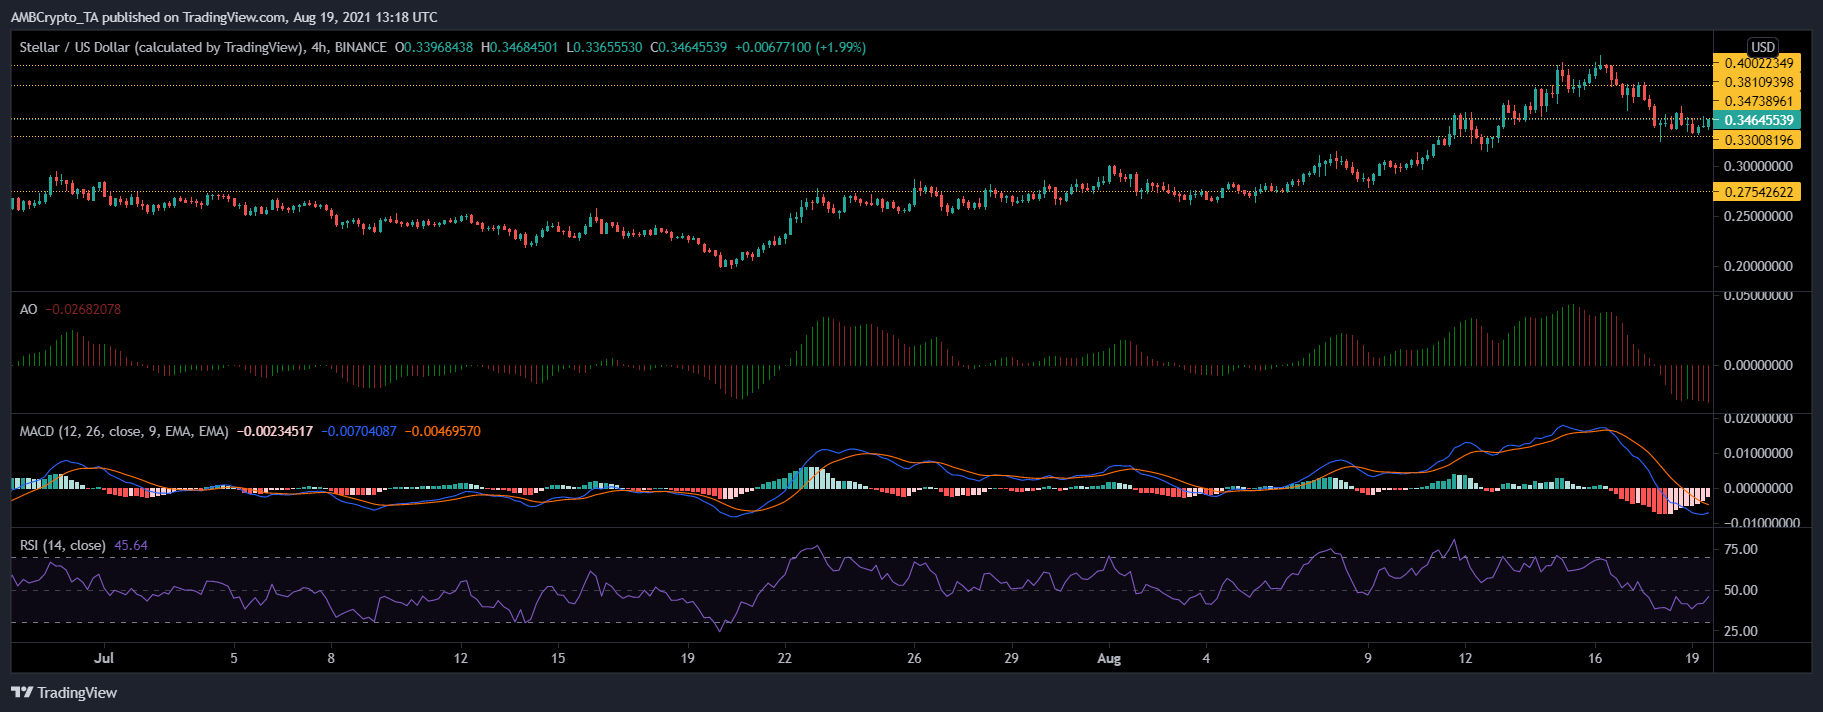 Bitcoin SV, XLM and Dogecoin Price Analysis: 19 August